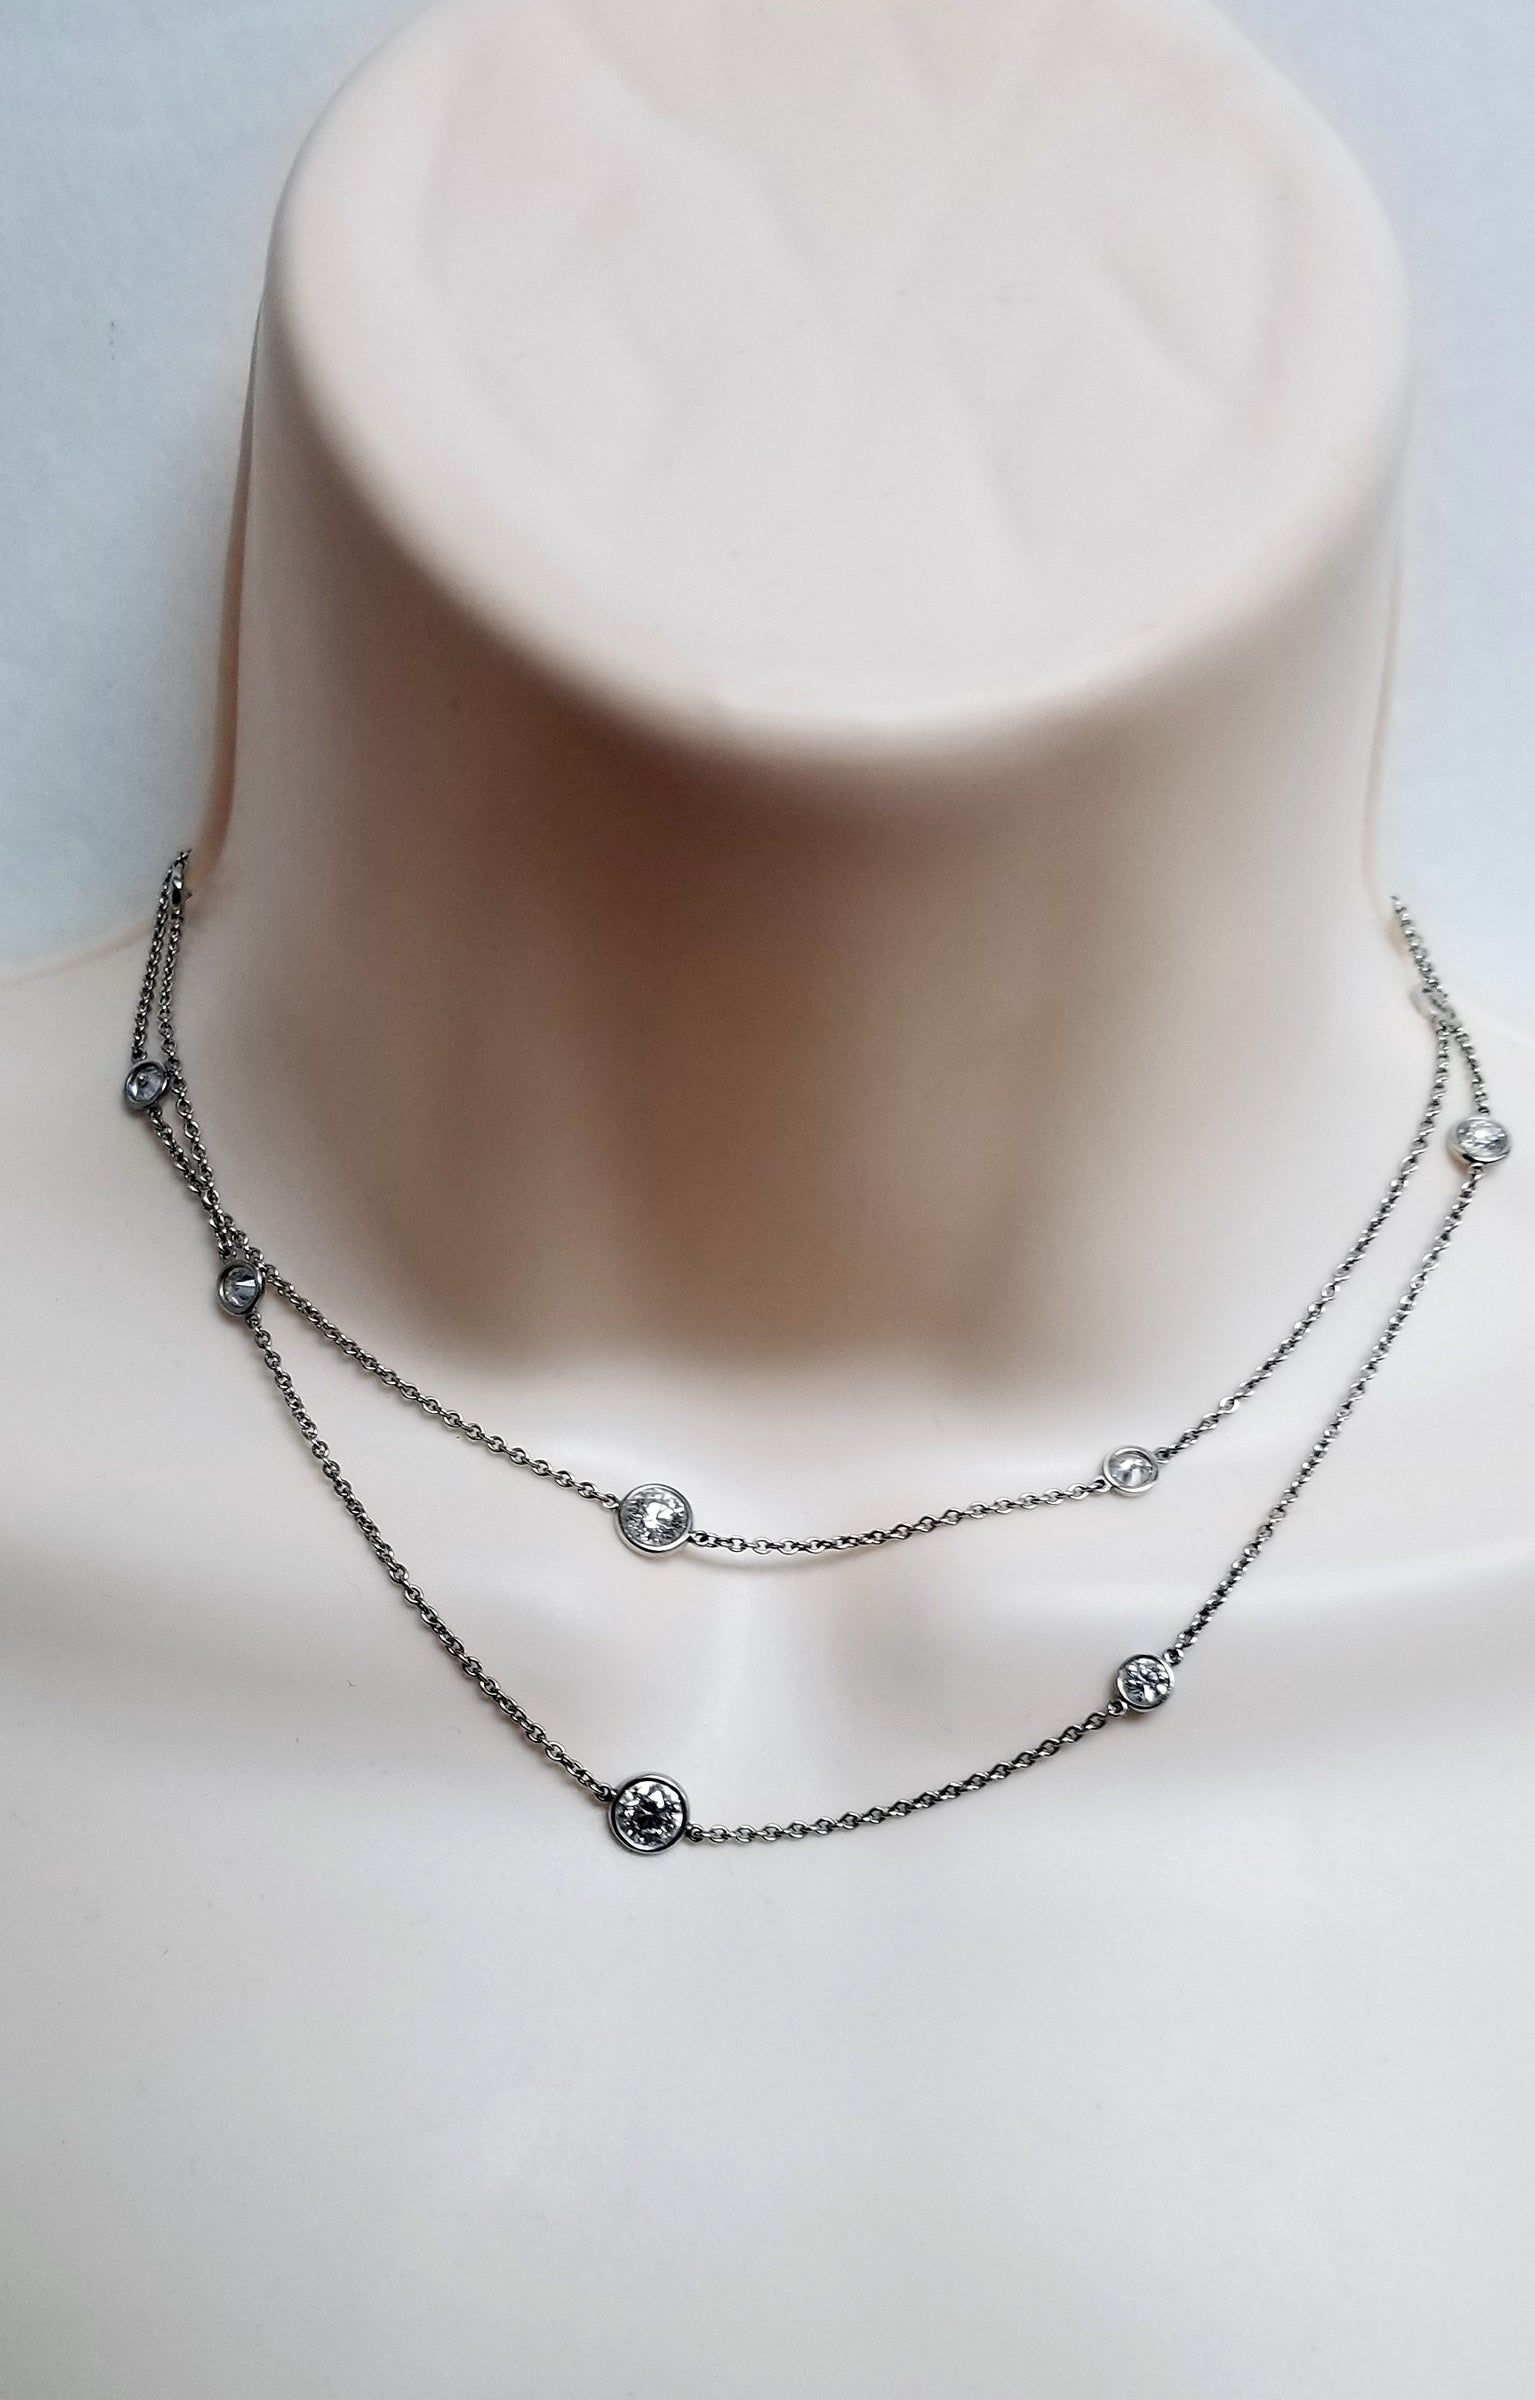 Tiffany Elsa Peretti 3.89 ct VVS-F Diamond by the yard 12 dia necklace platinum